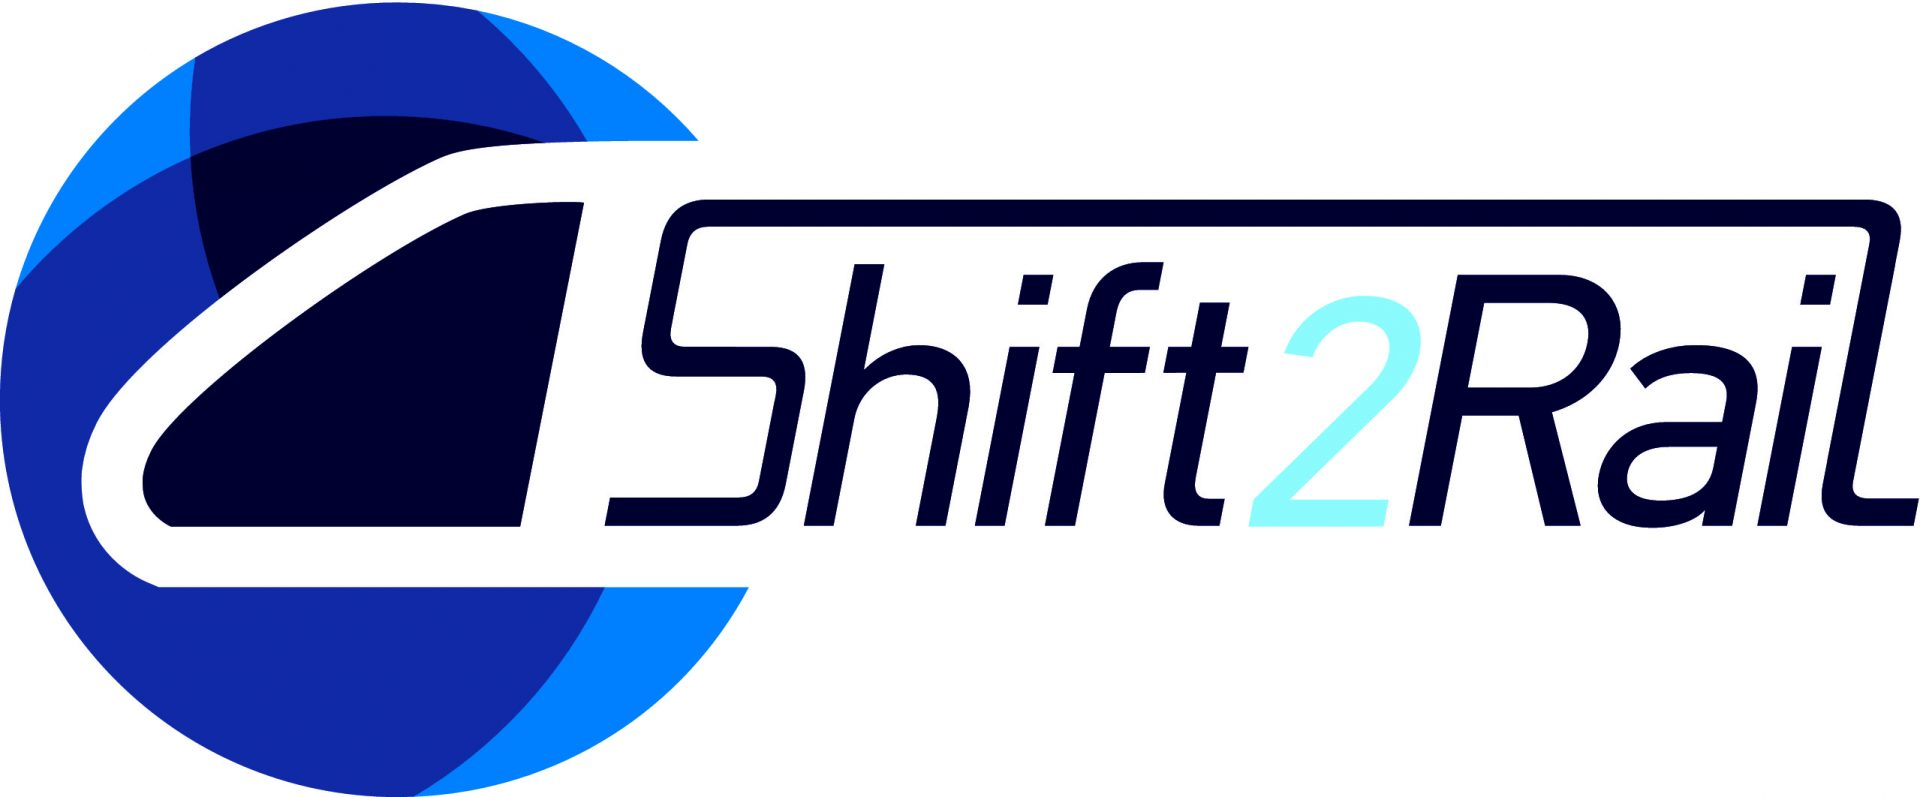 Image of the Shift2Rail project